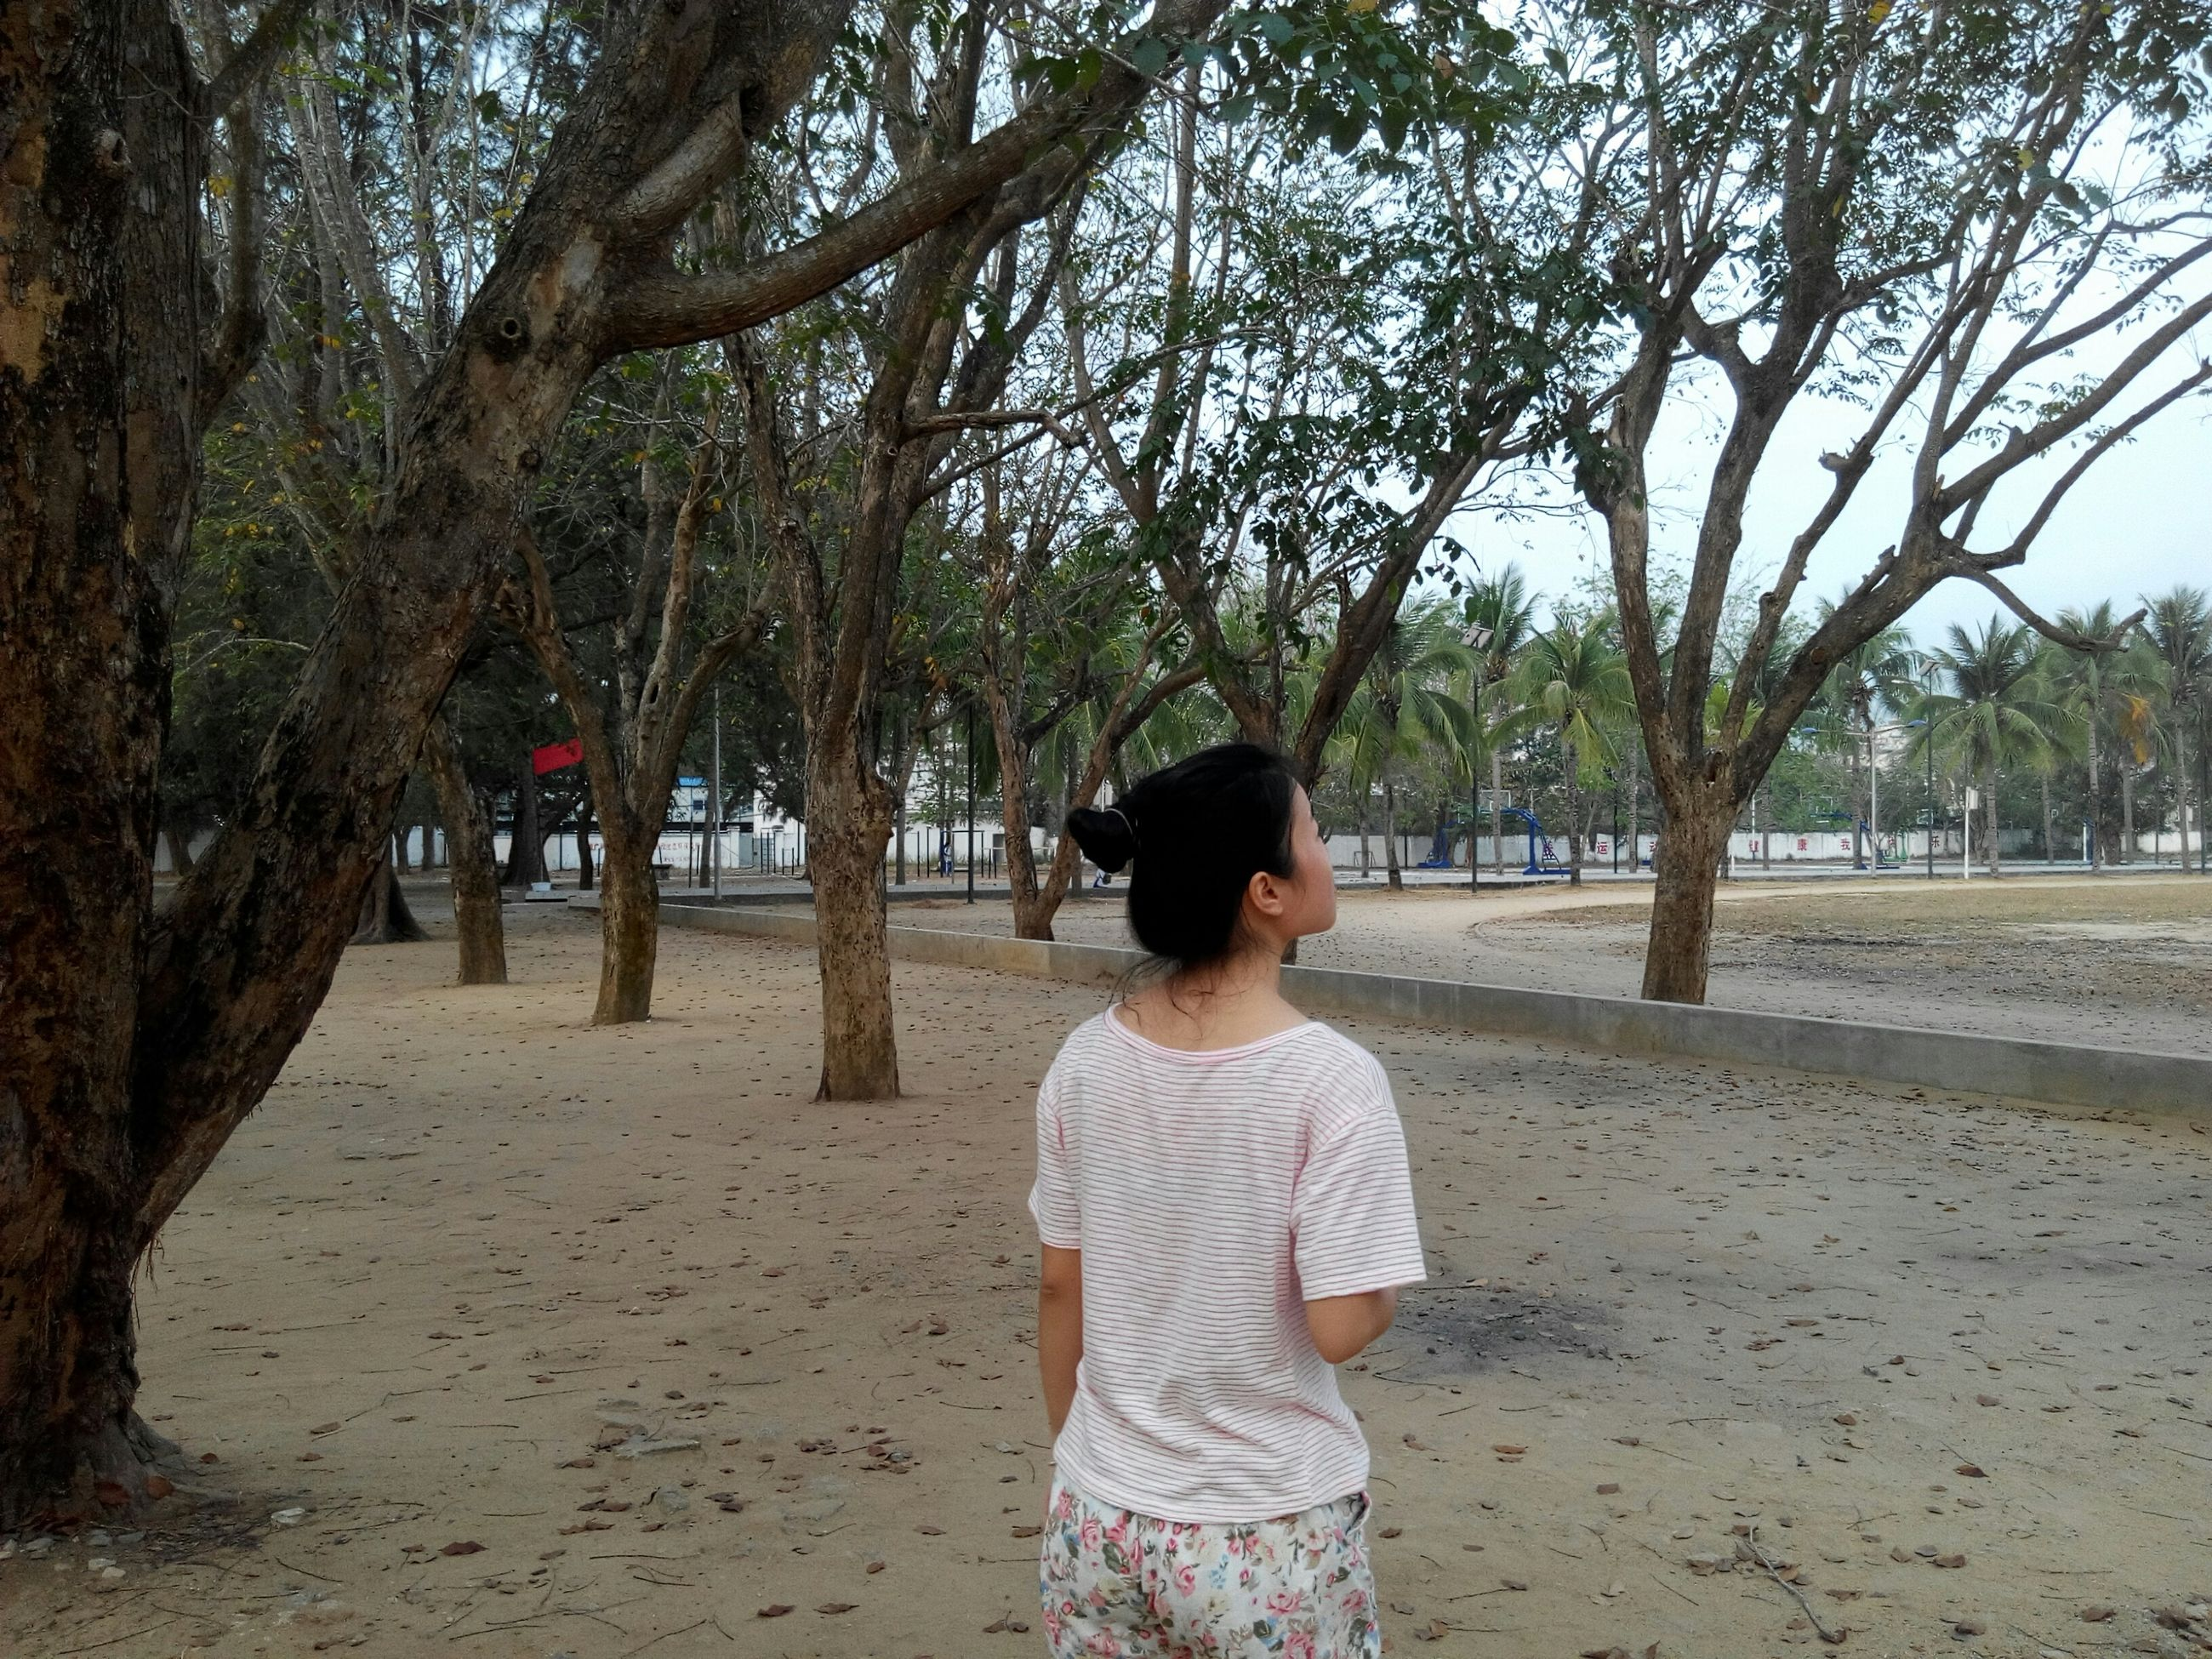 tree, rear view, lifestyles, leisure activity, casual clothing, childhood, park - man made space, full length, tree trunk, girls, boys, elementary age, day, branch, person, walking, park, sitting